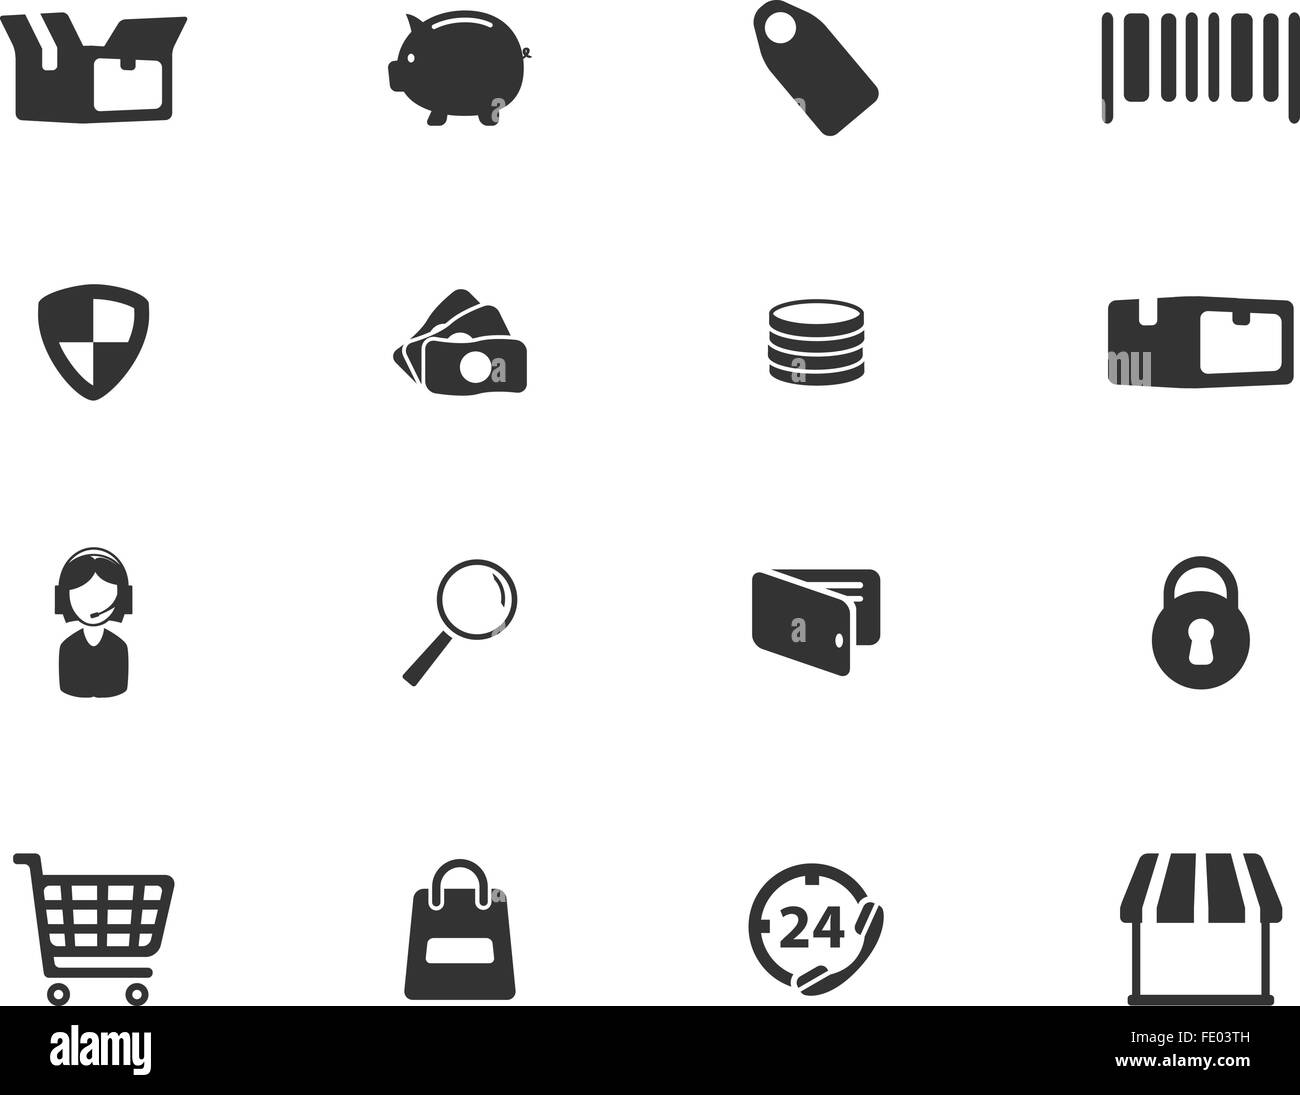 E-commerce simply icons - Stock Image